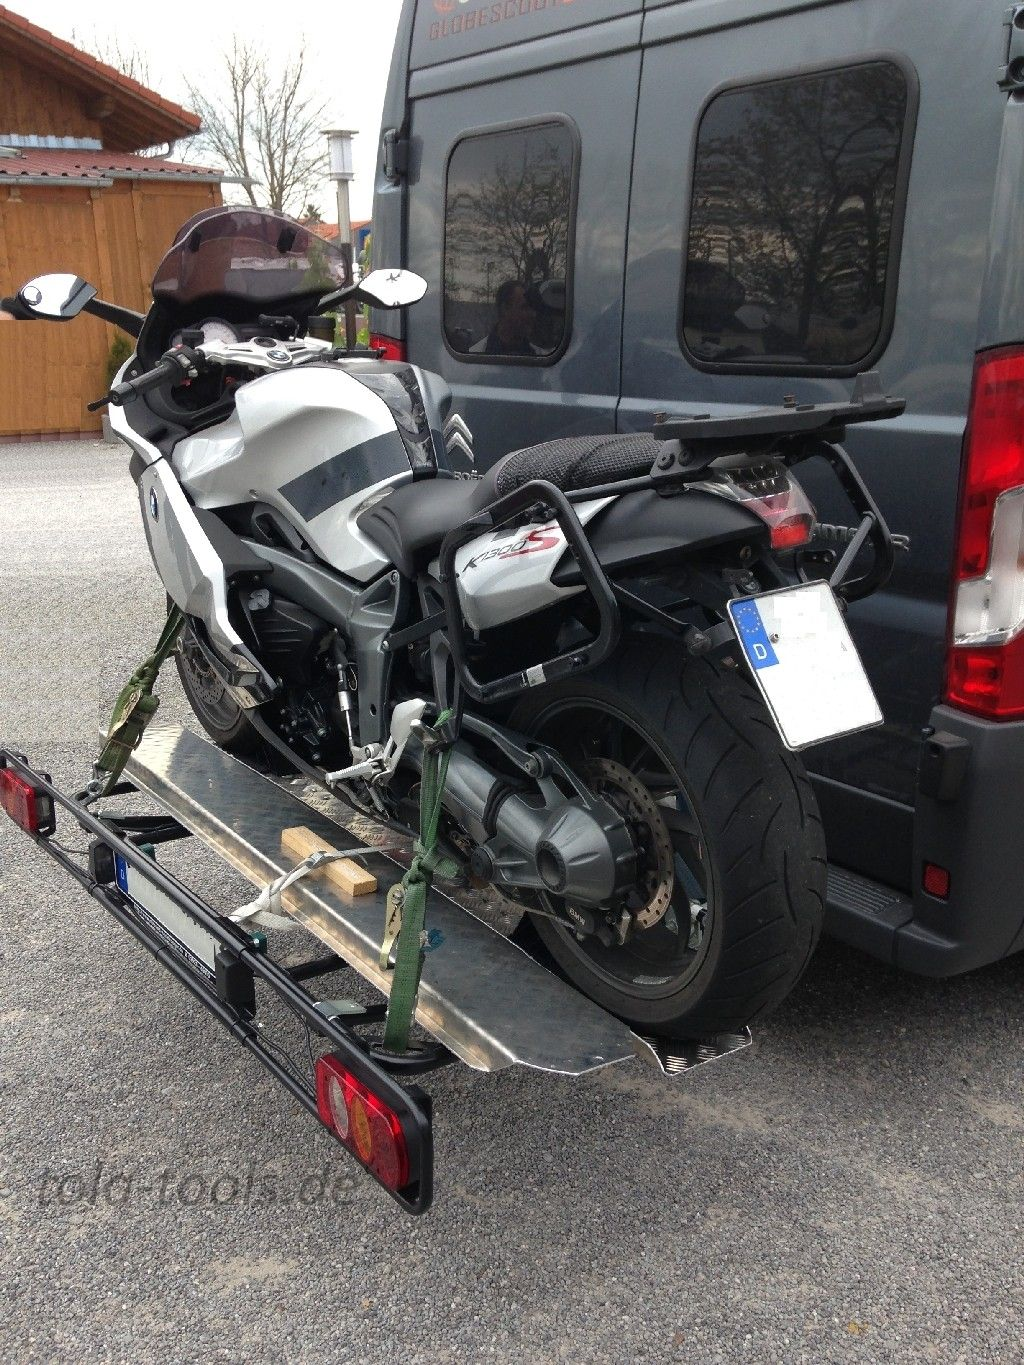 Cate Carrier for Motorcycles on Fiat Ducato